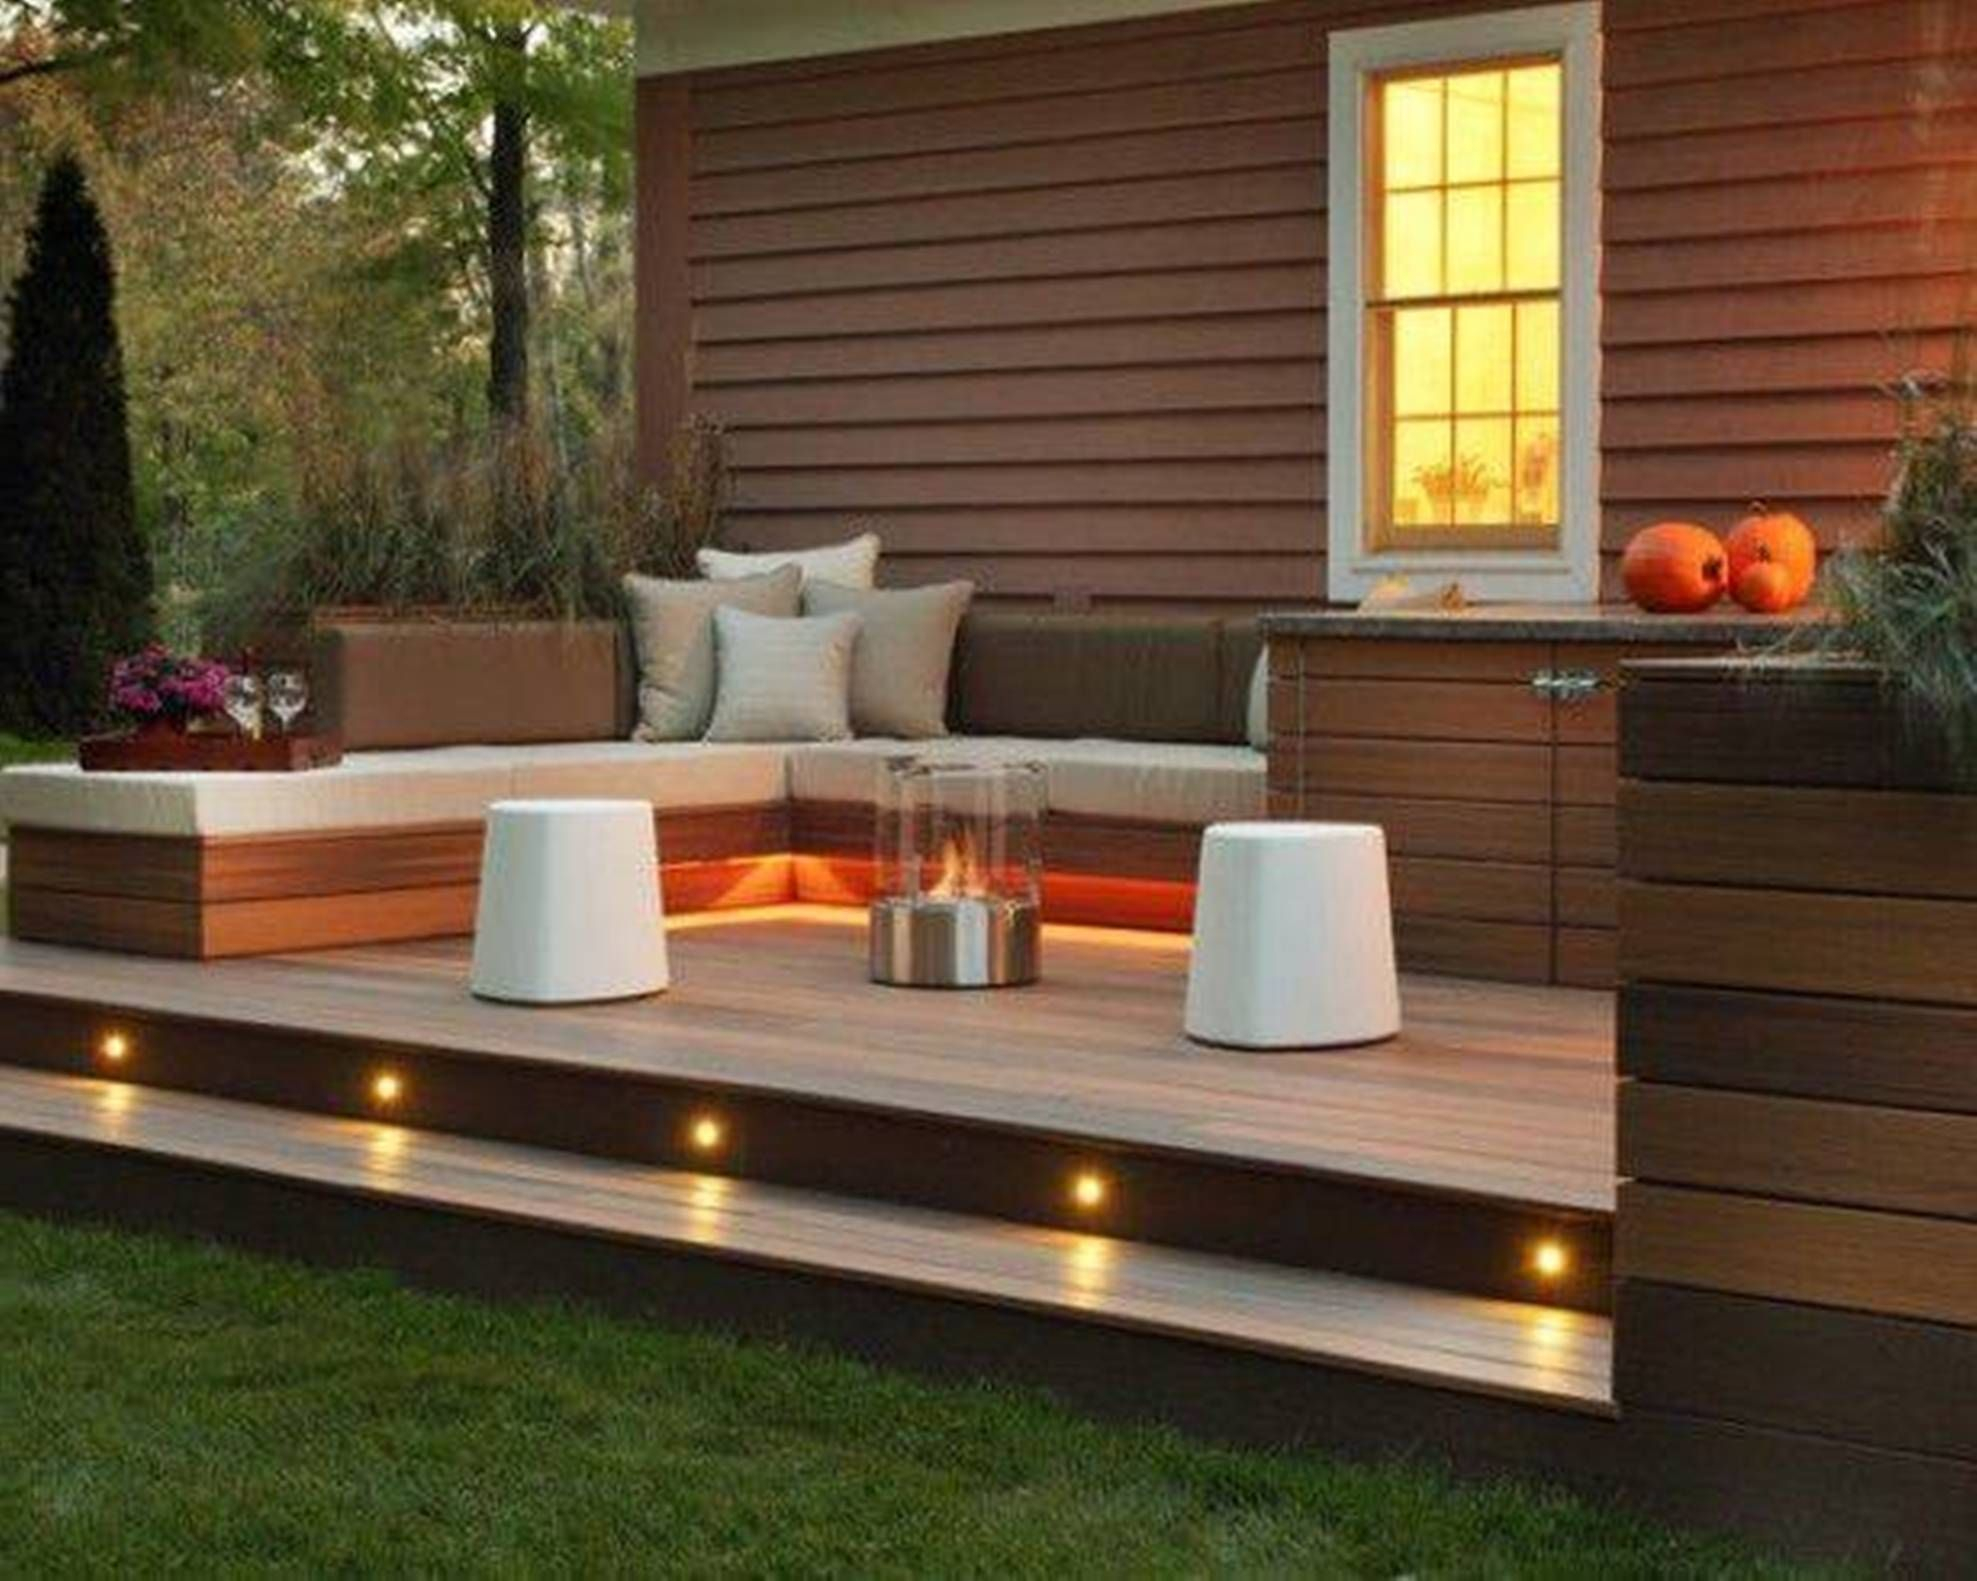 Landscaping And Outdoor Building Great Small Backyard Deck Designs pertaining to 15 Awesome Designs of How to Improve Deck And Patio Ideas For Small Backyards